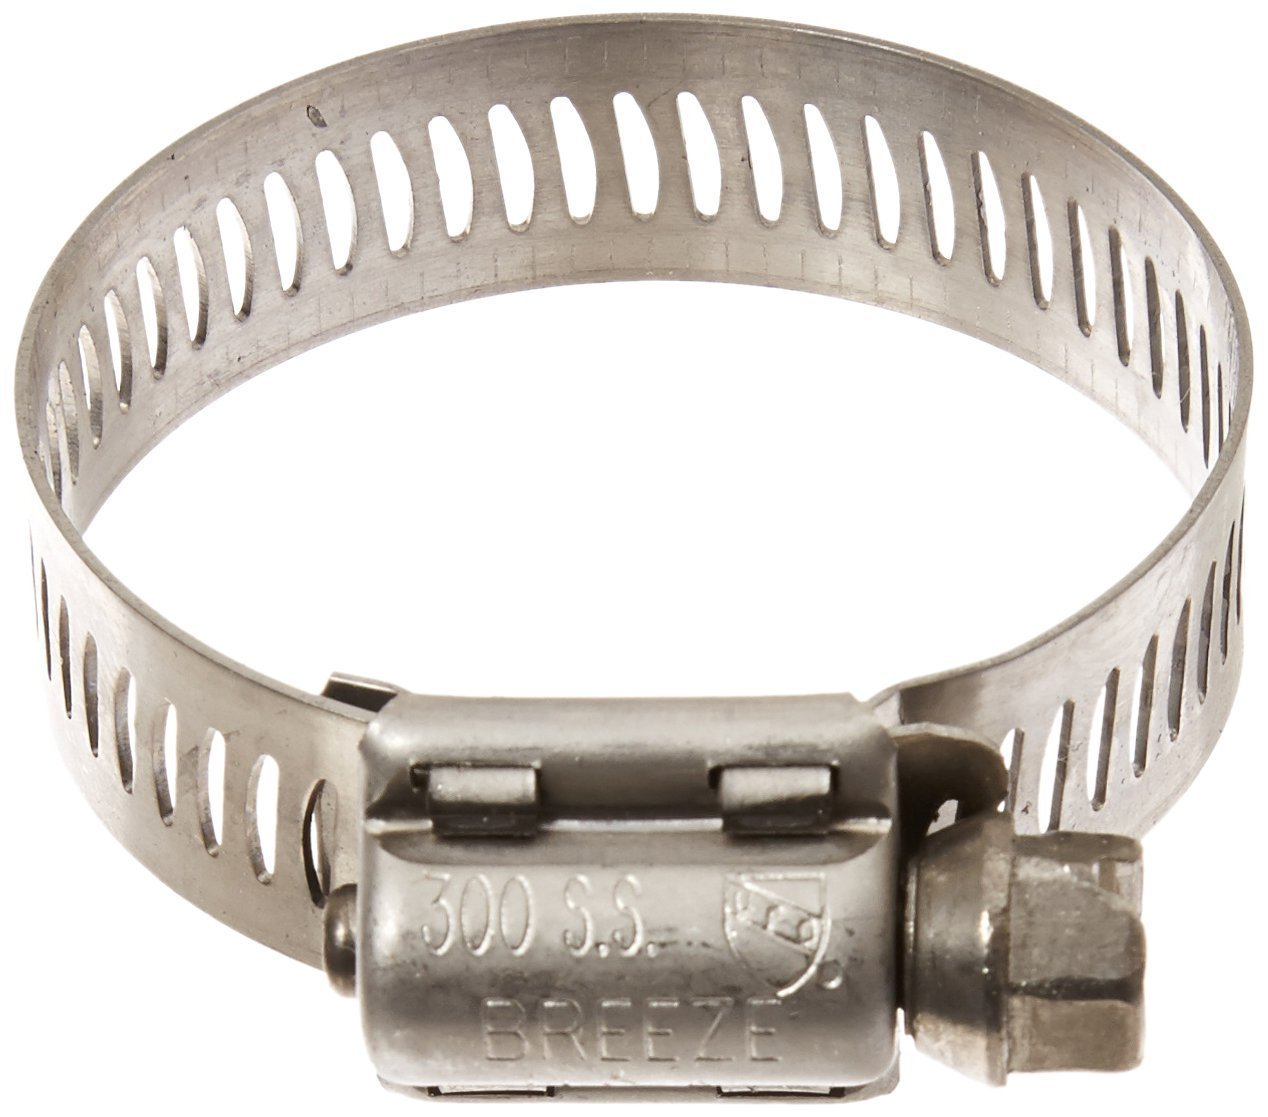 Breeze 63020H Marine Grade Power-Seal Stainless Steel Hose Clamp, Worm-Drive, SAE Size 20, 13/16'' to 1-3/4'' Diameter Range, 1/2'' Band Width (Pack of 10)